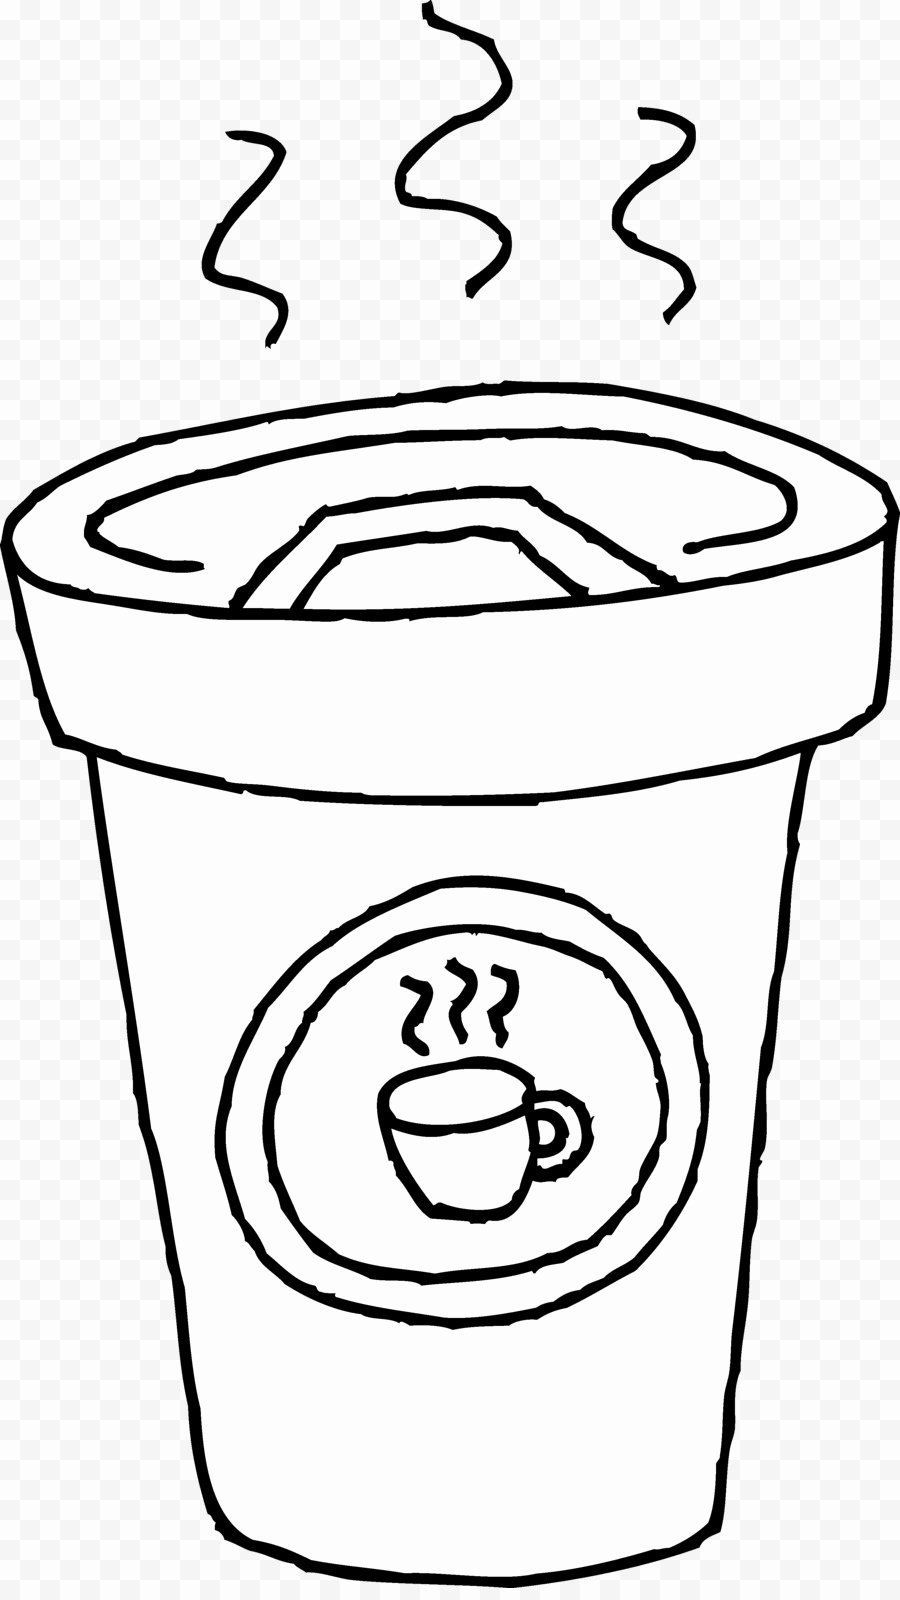 Cute Starbucks Coloring Pages Luxury Cup Tea Clipart Black And White Halloweencoloringpages Cute St Clipart Black And White Star Coloring Pages Coloring Pages